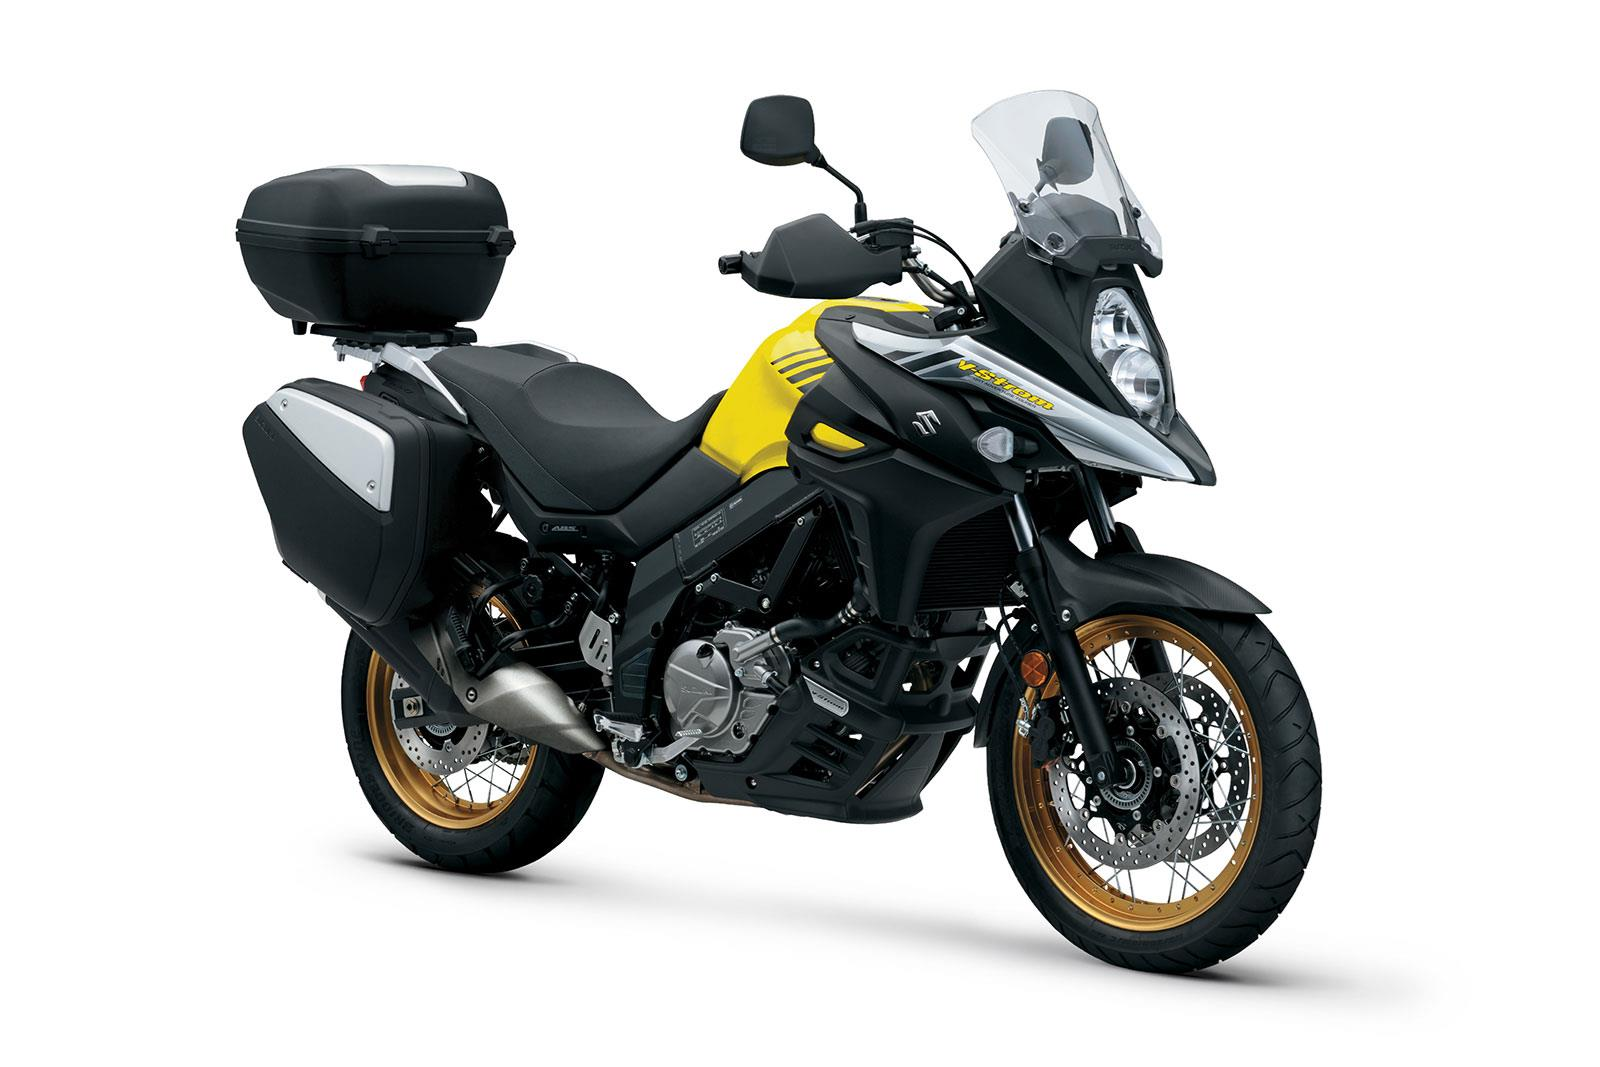 suzuki s v strom range gets gt upgrades. Black Bedroom Furniture Sets. Home Design Ideas